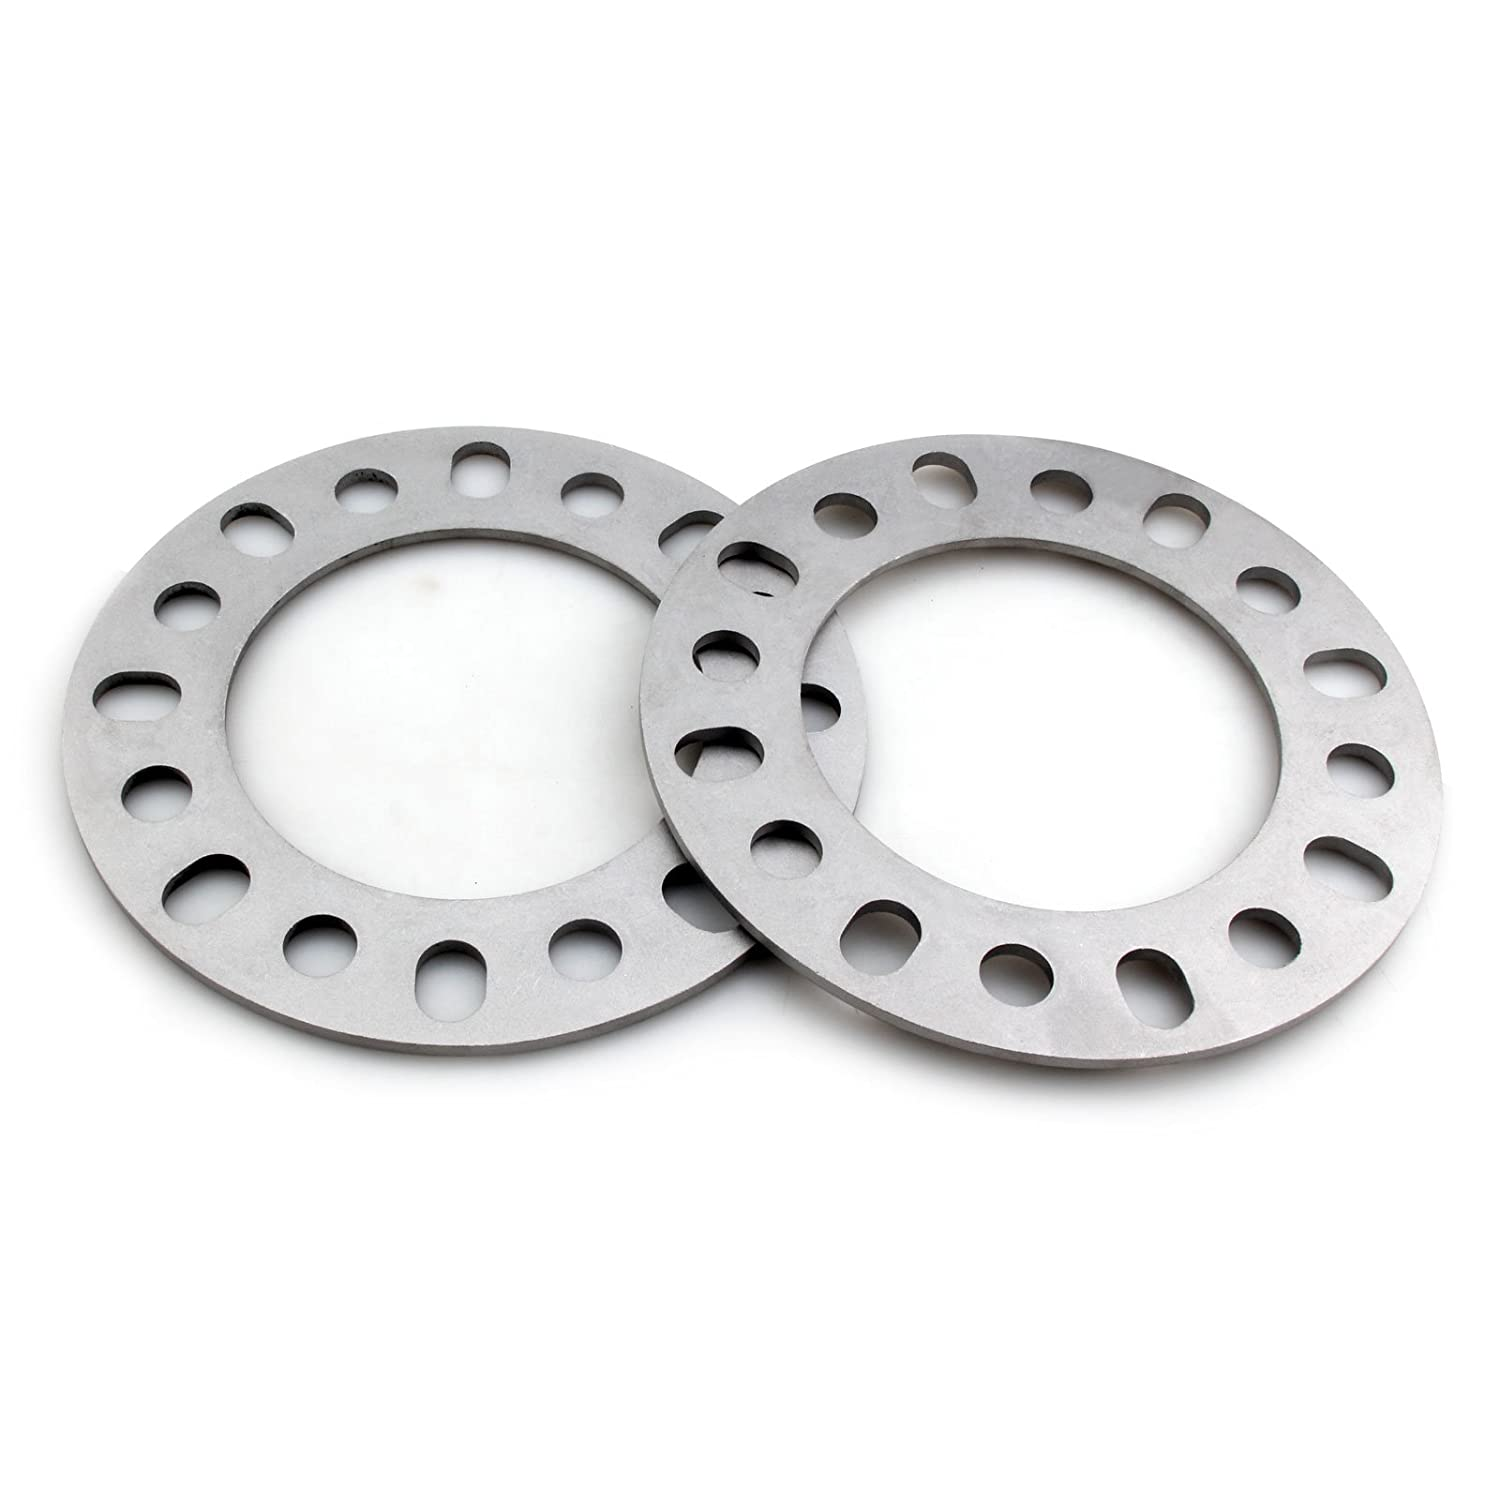 DCVAMOUS 6mm or 1/4' Universal Wheel Spacers 8 Lug for All 8x170 8x6.5 8x165.1 Bolt Pattern (4PC)